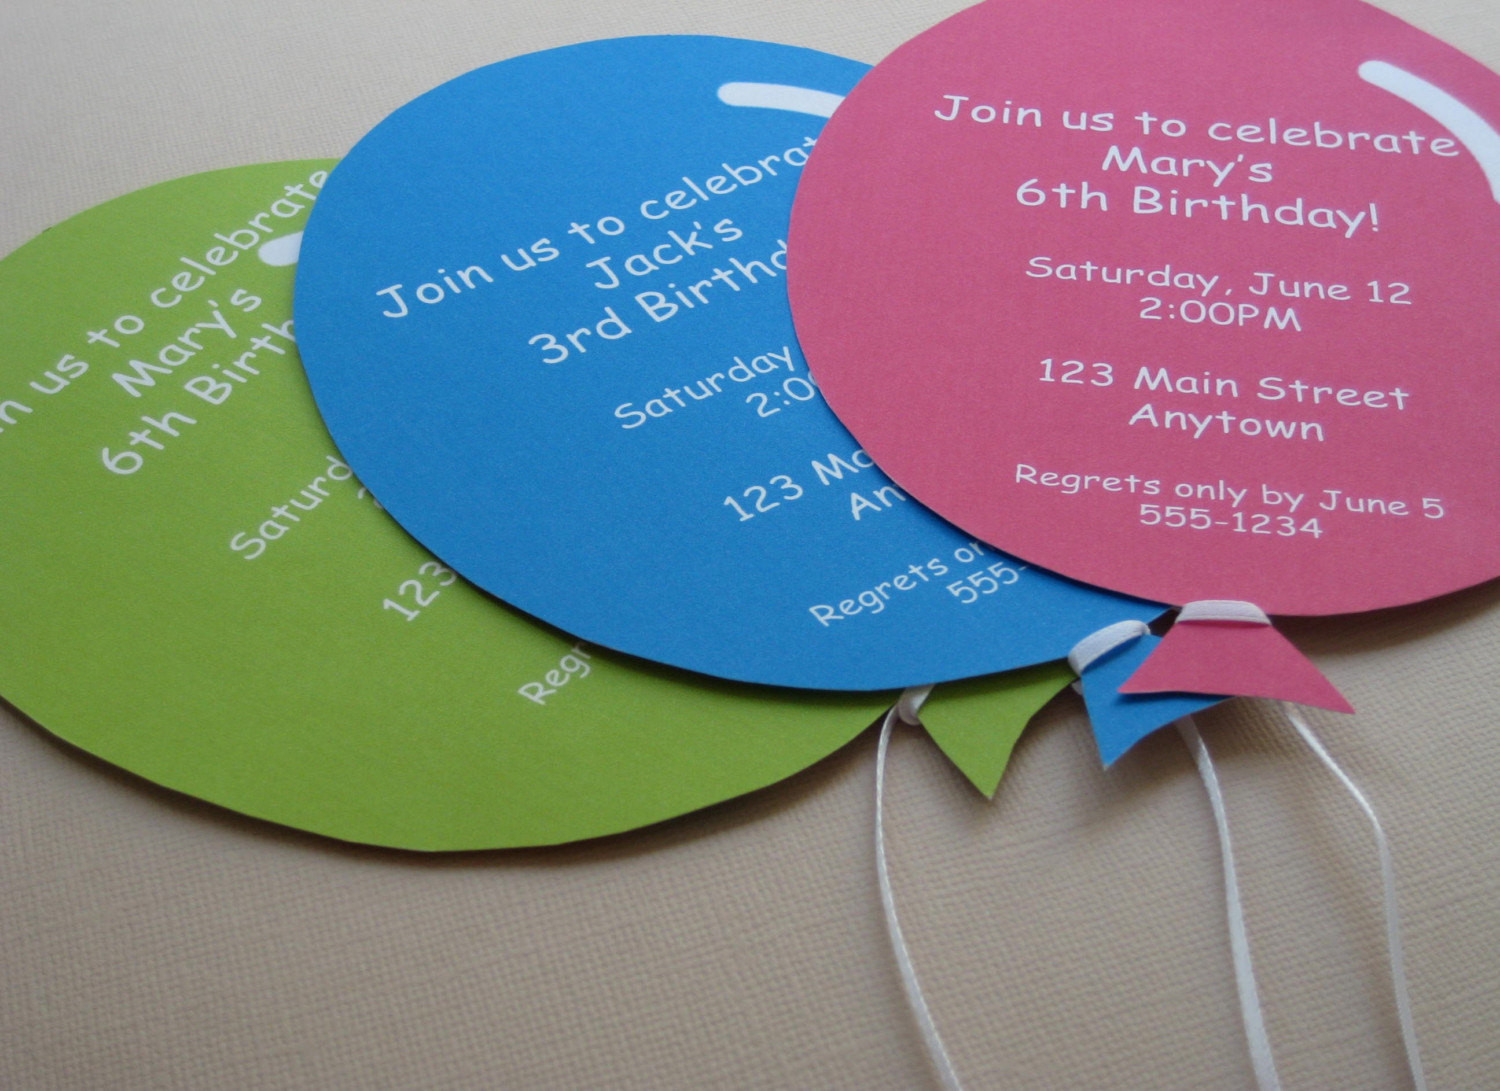 Best ideas about Custom Birthday Party Invitations . Save or Pin Personalized Balloon Party Invitations Handmade Now.